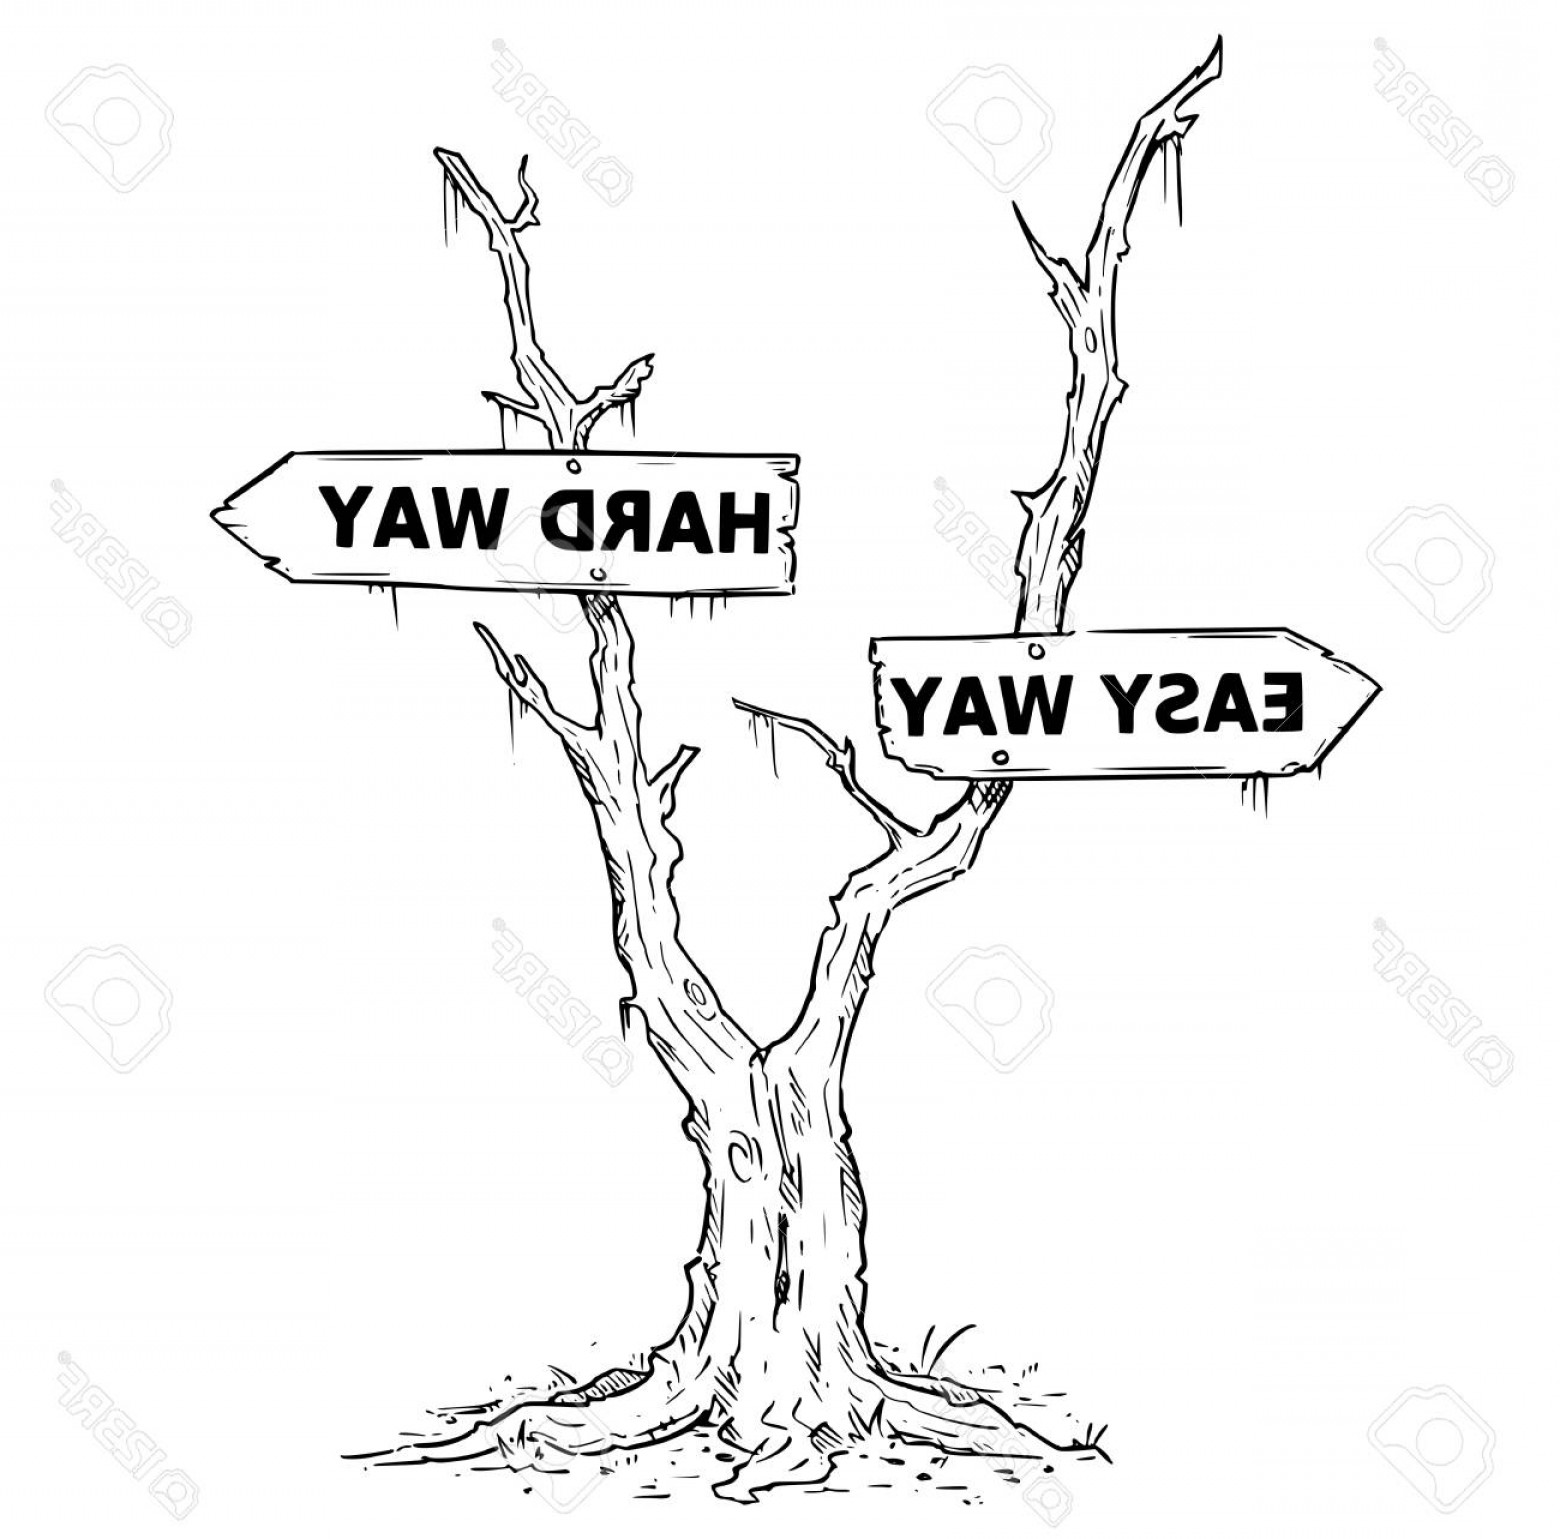 Swamp Vector Art: Photostock Vector Vector Drawing Of Dead Swamp Or Desert Tree With Easy Or Hard Way Business Decision Arrow Signs